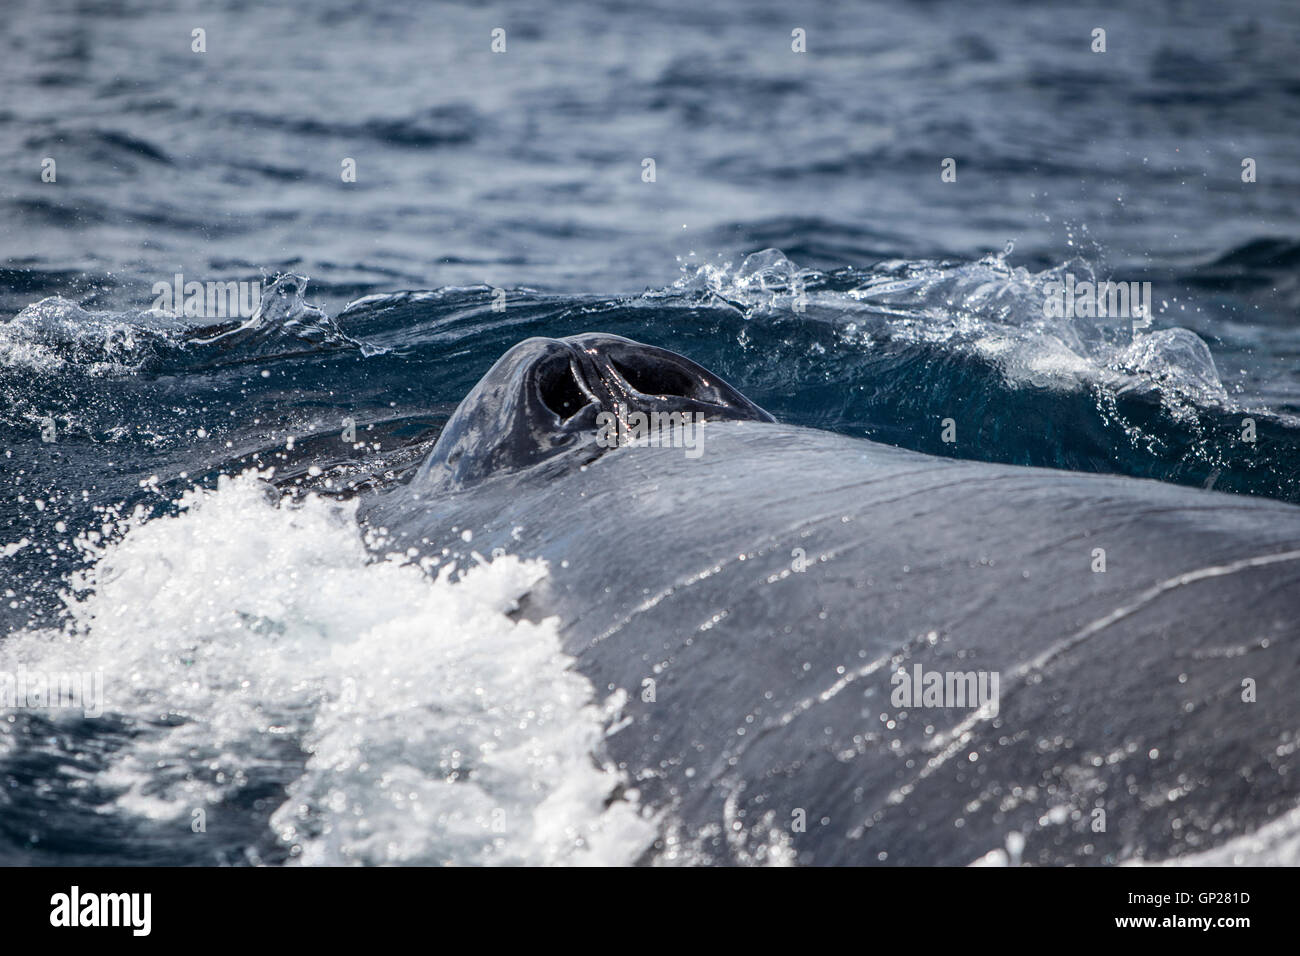 Humpback Whale breathing on surface, Megaptera novaeangliae, Silver Bank, Atlantic Ocean, Dominican Republic Stock Photo